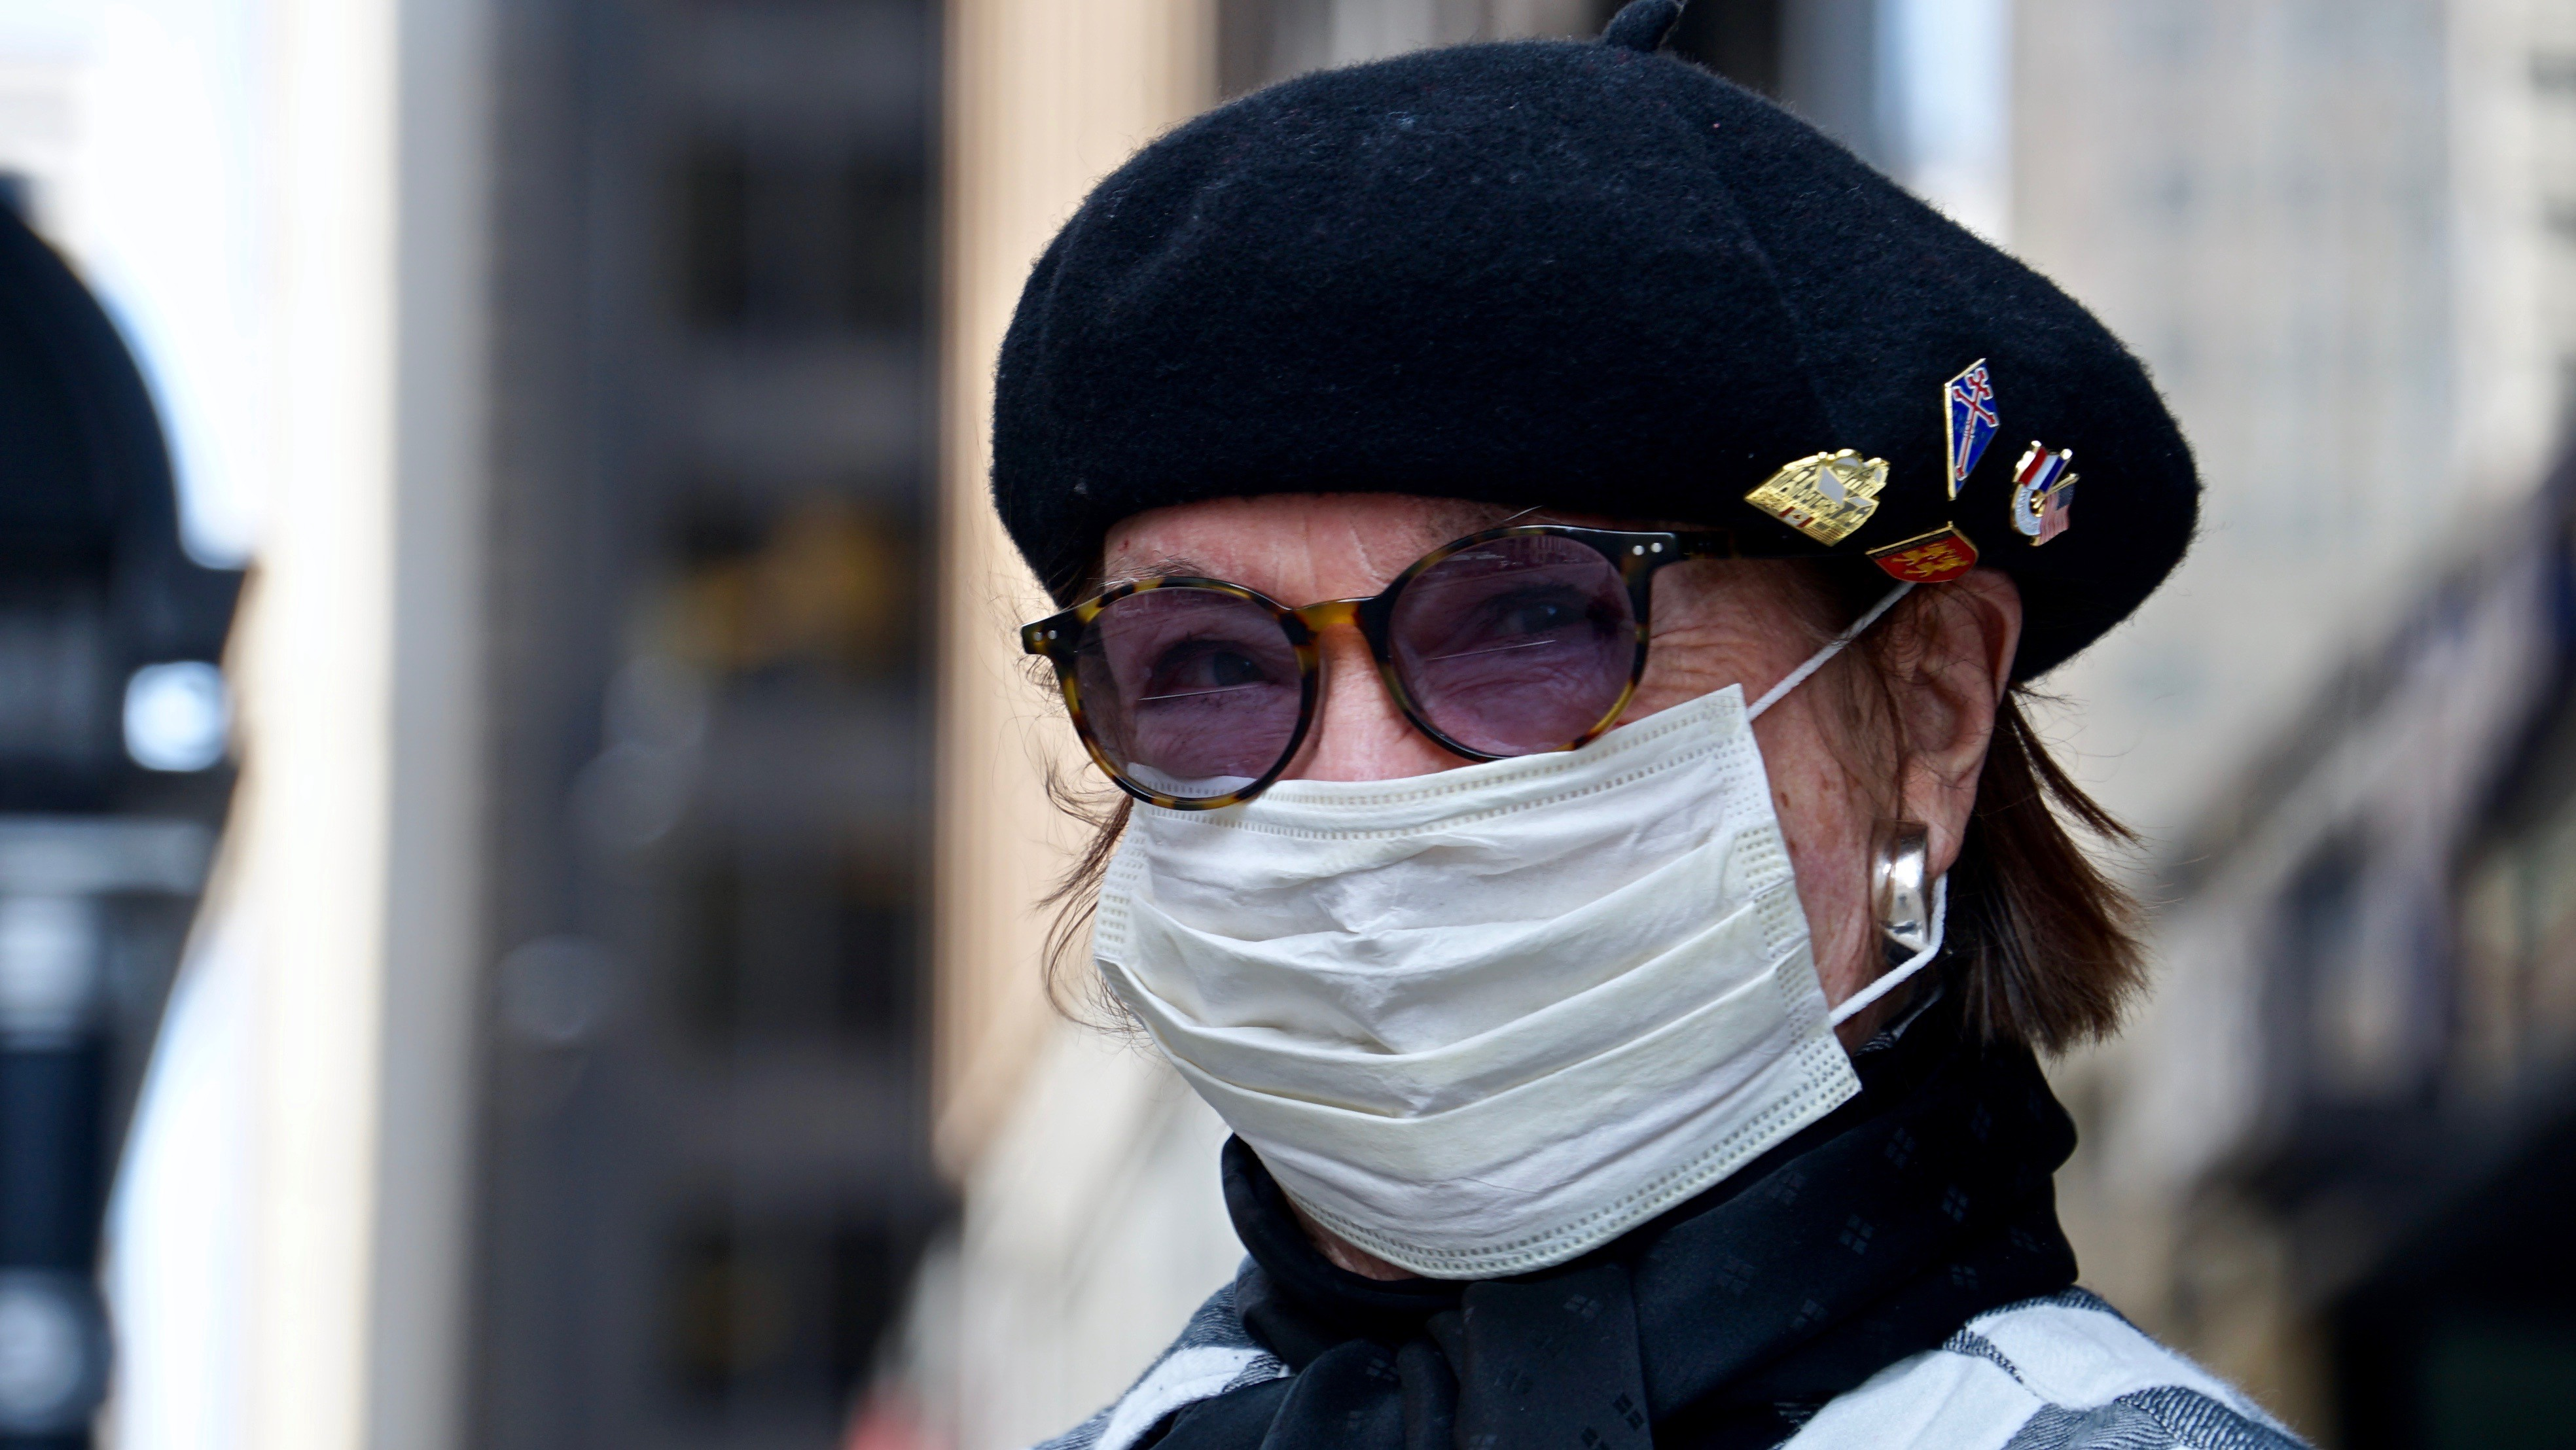 A medical mask and sunglasses can't cover up her expression.